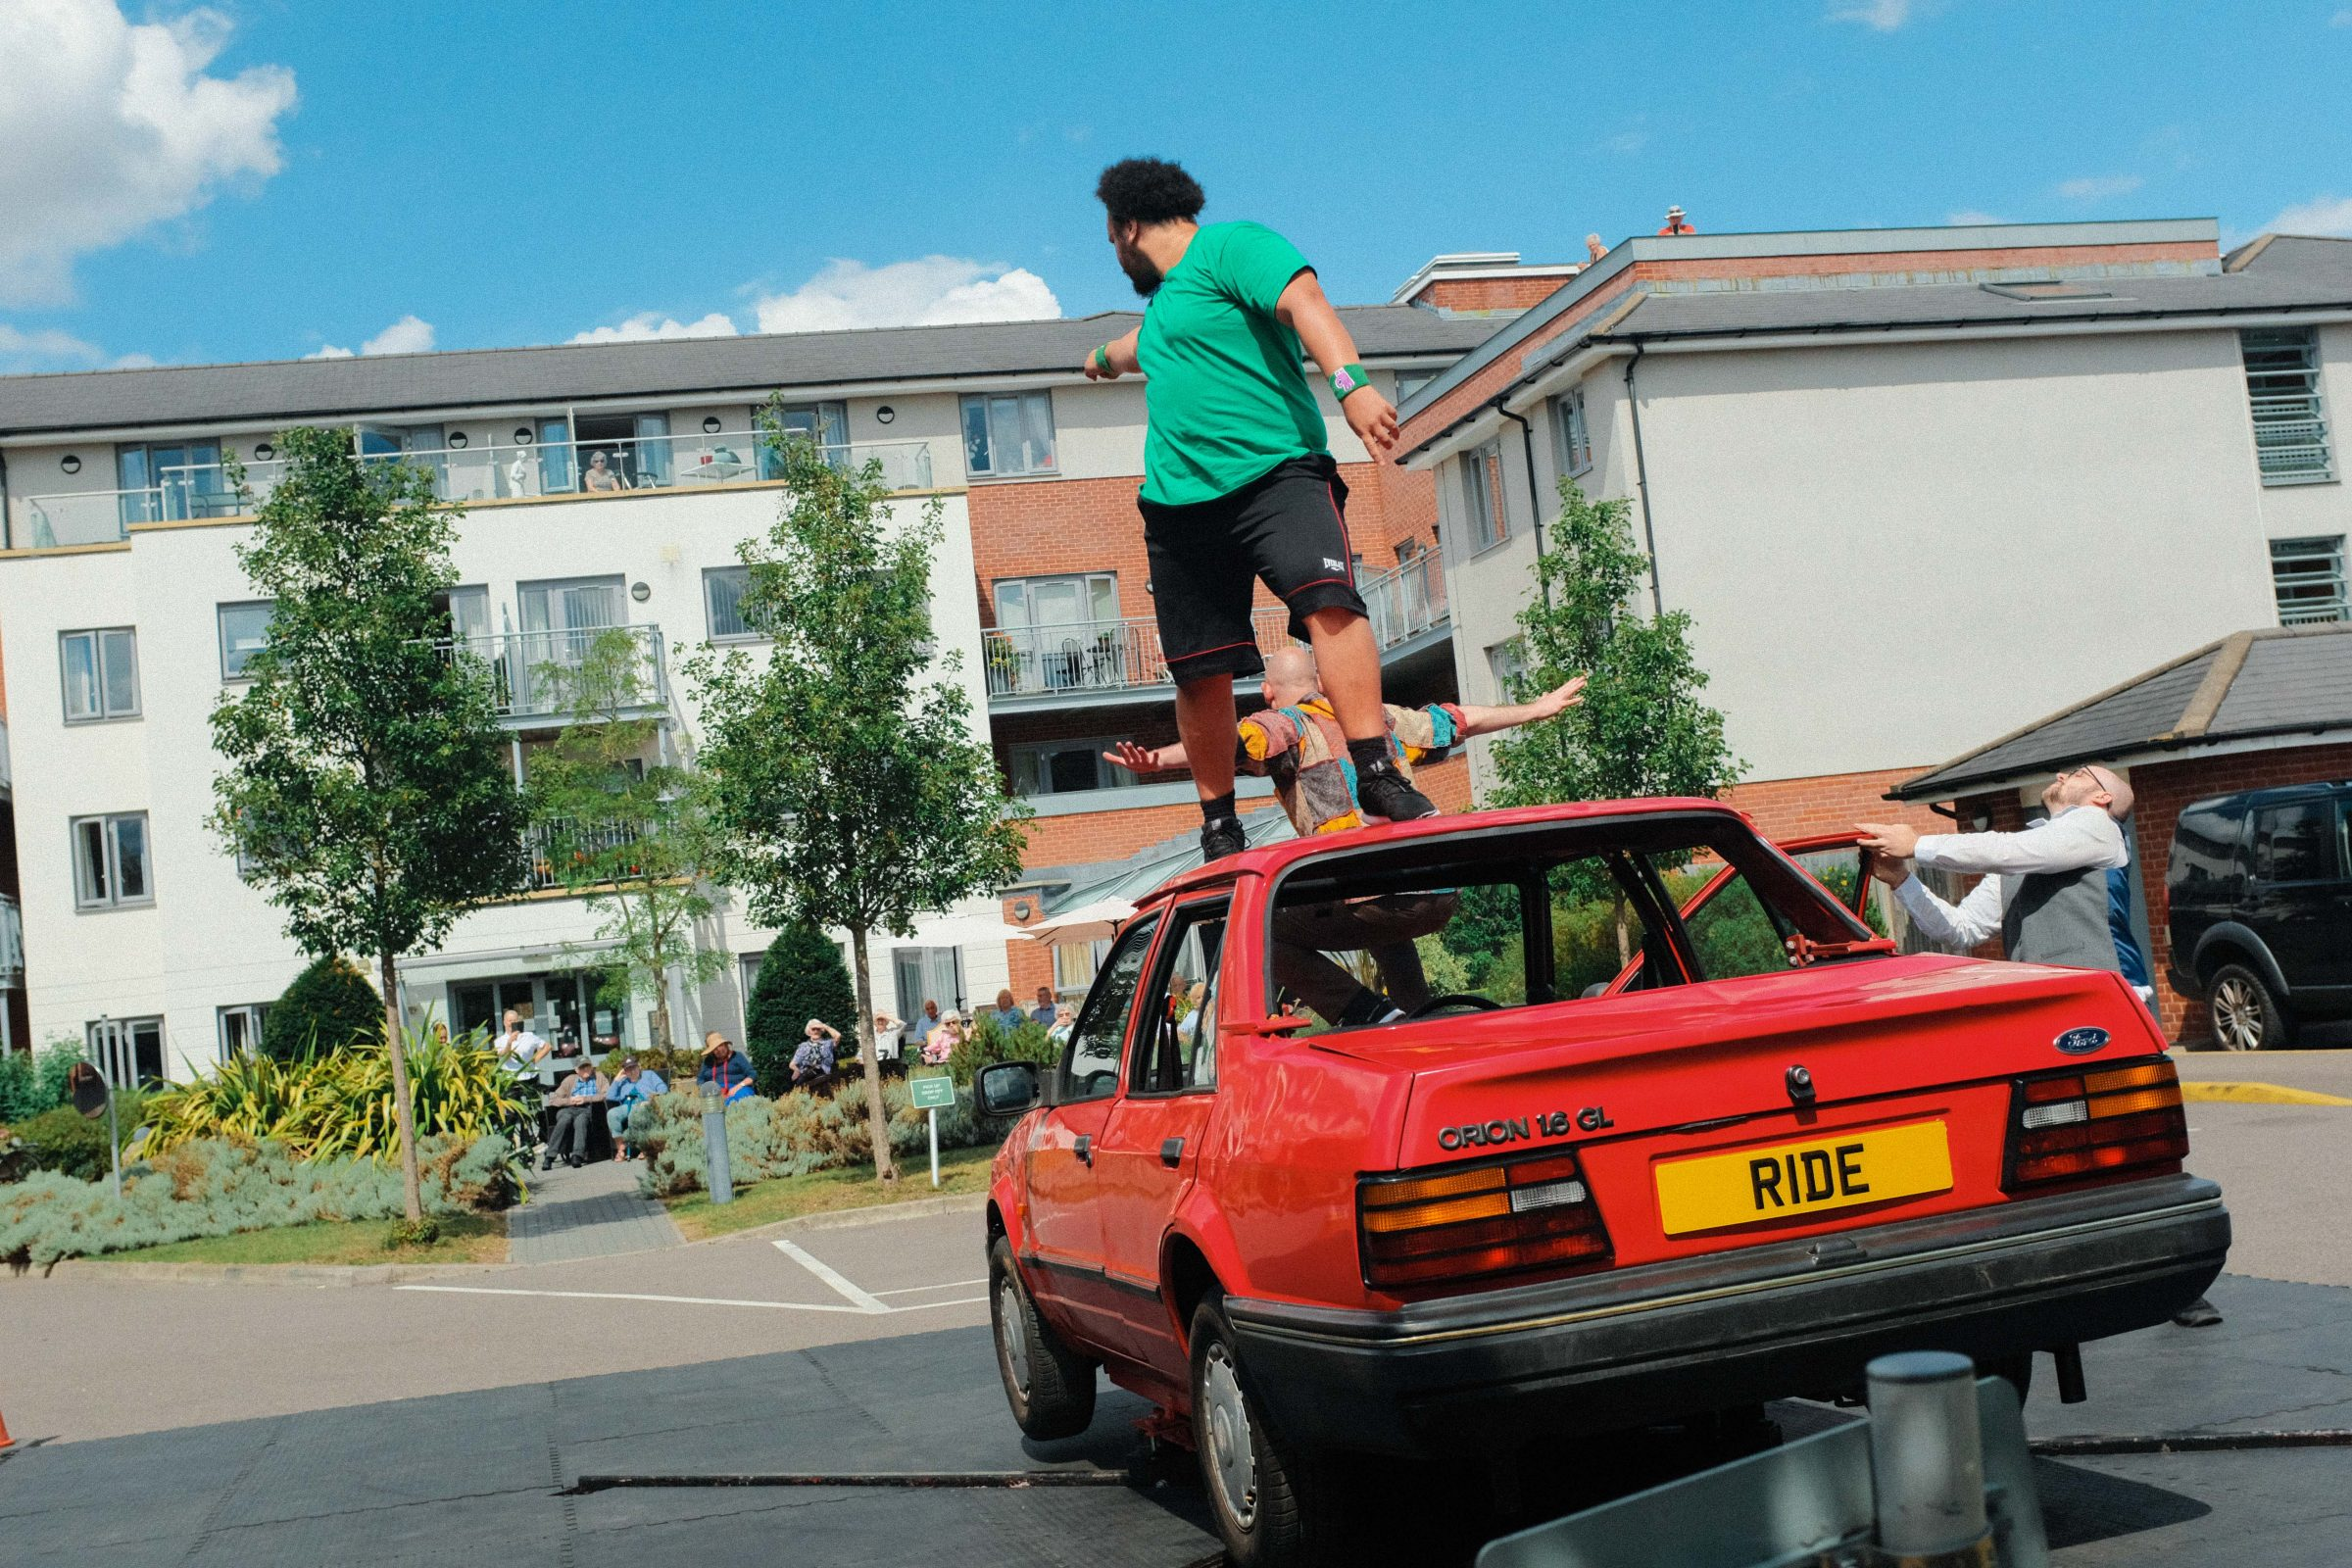 Dancers perform on top of a car